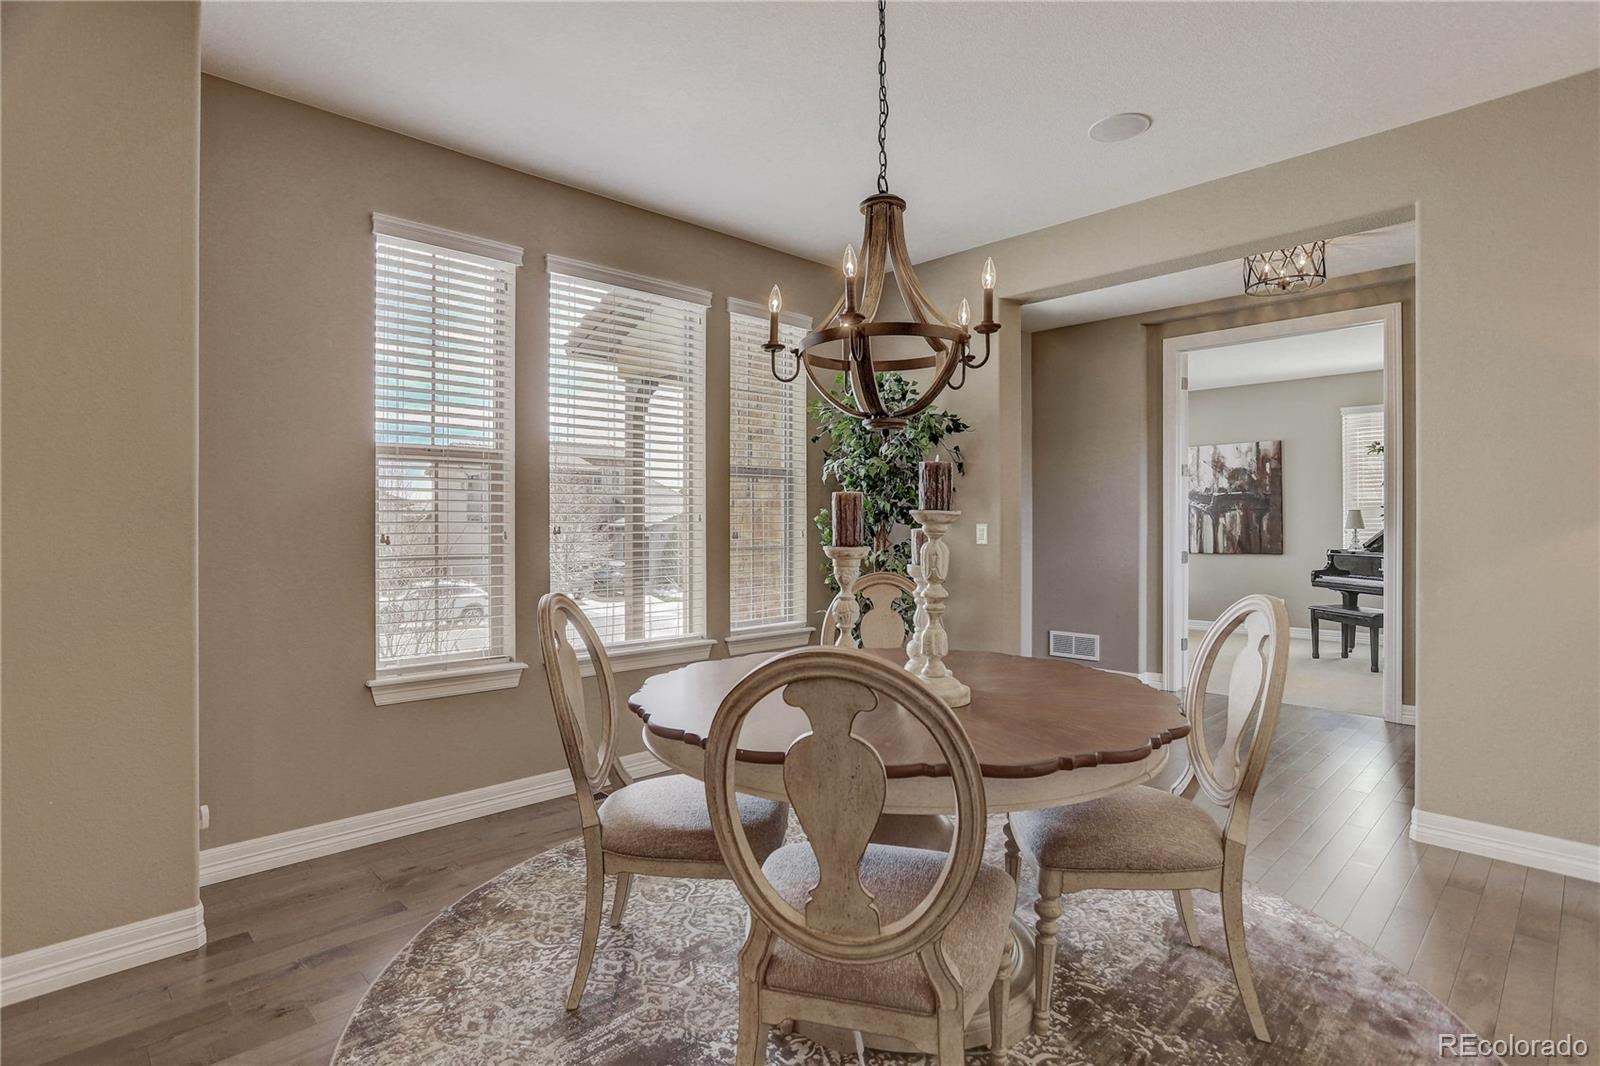 MLS# 8360577 - 17 - 2247 S Isabell Court, Lakewood, CO 80228